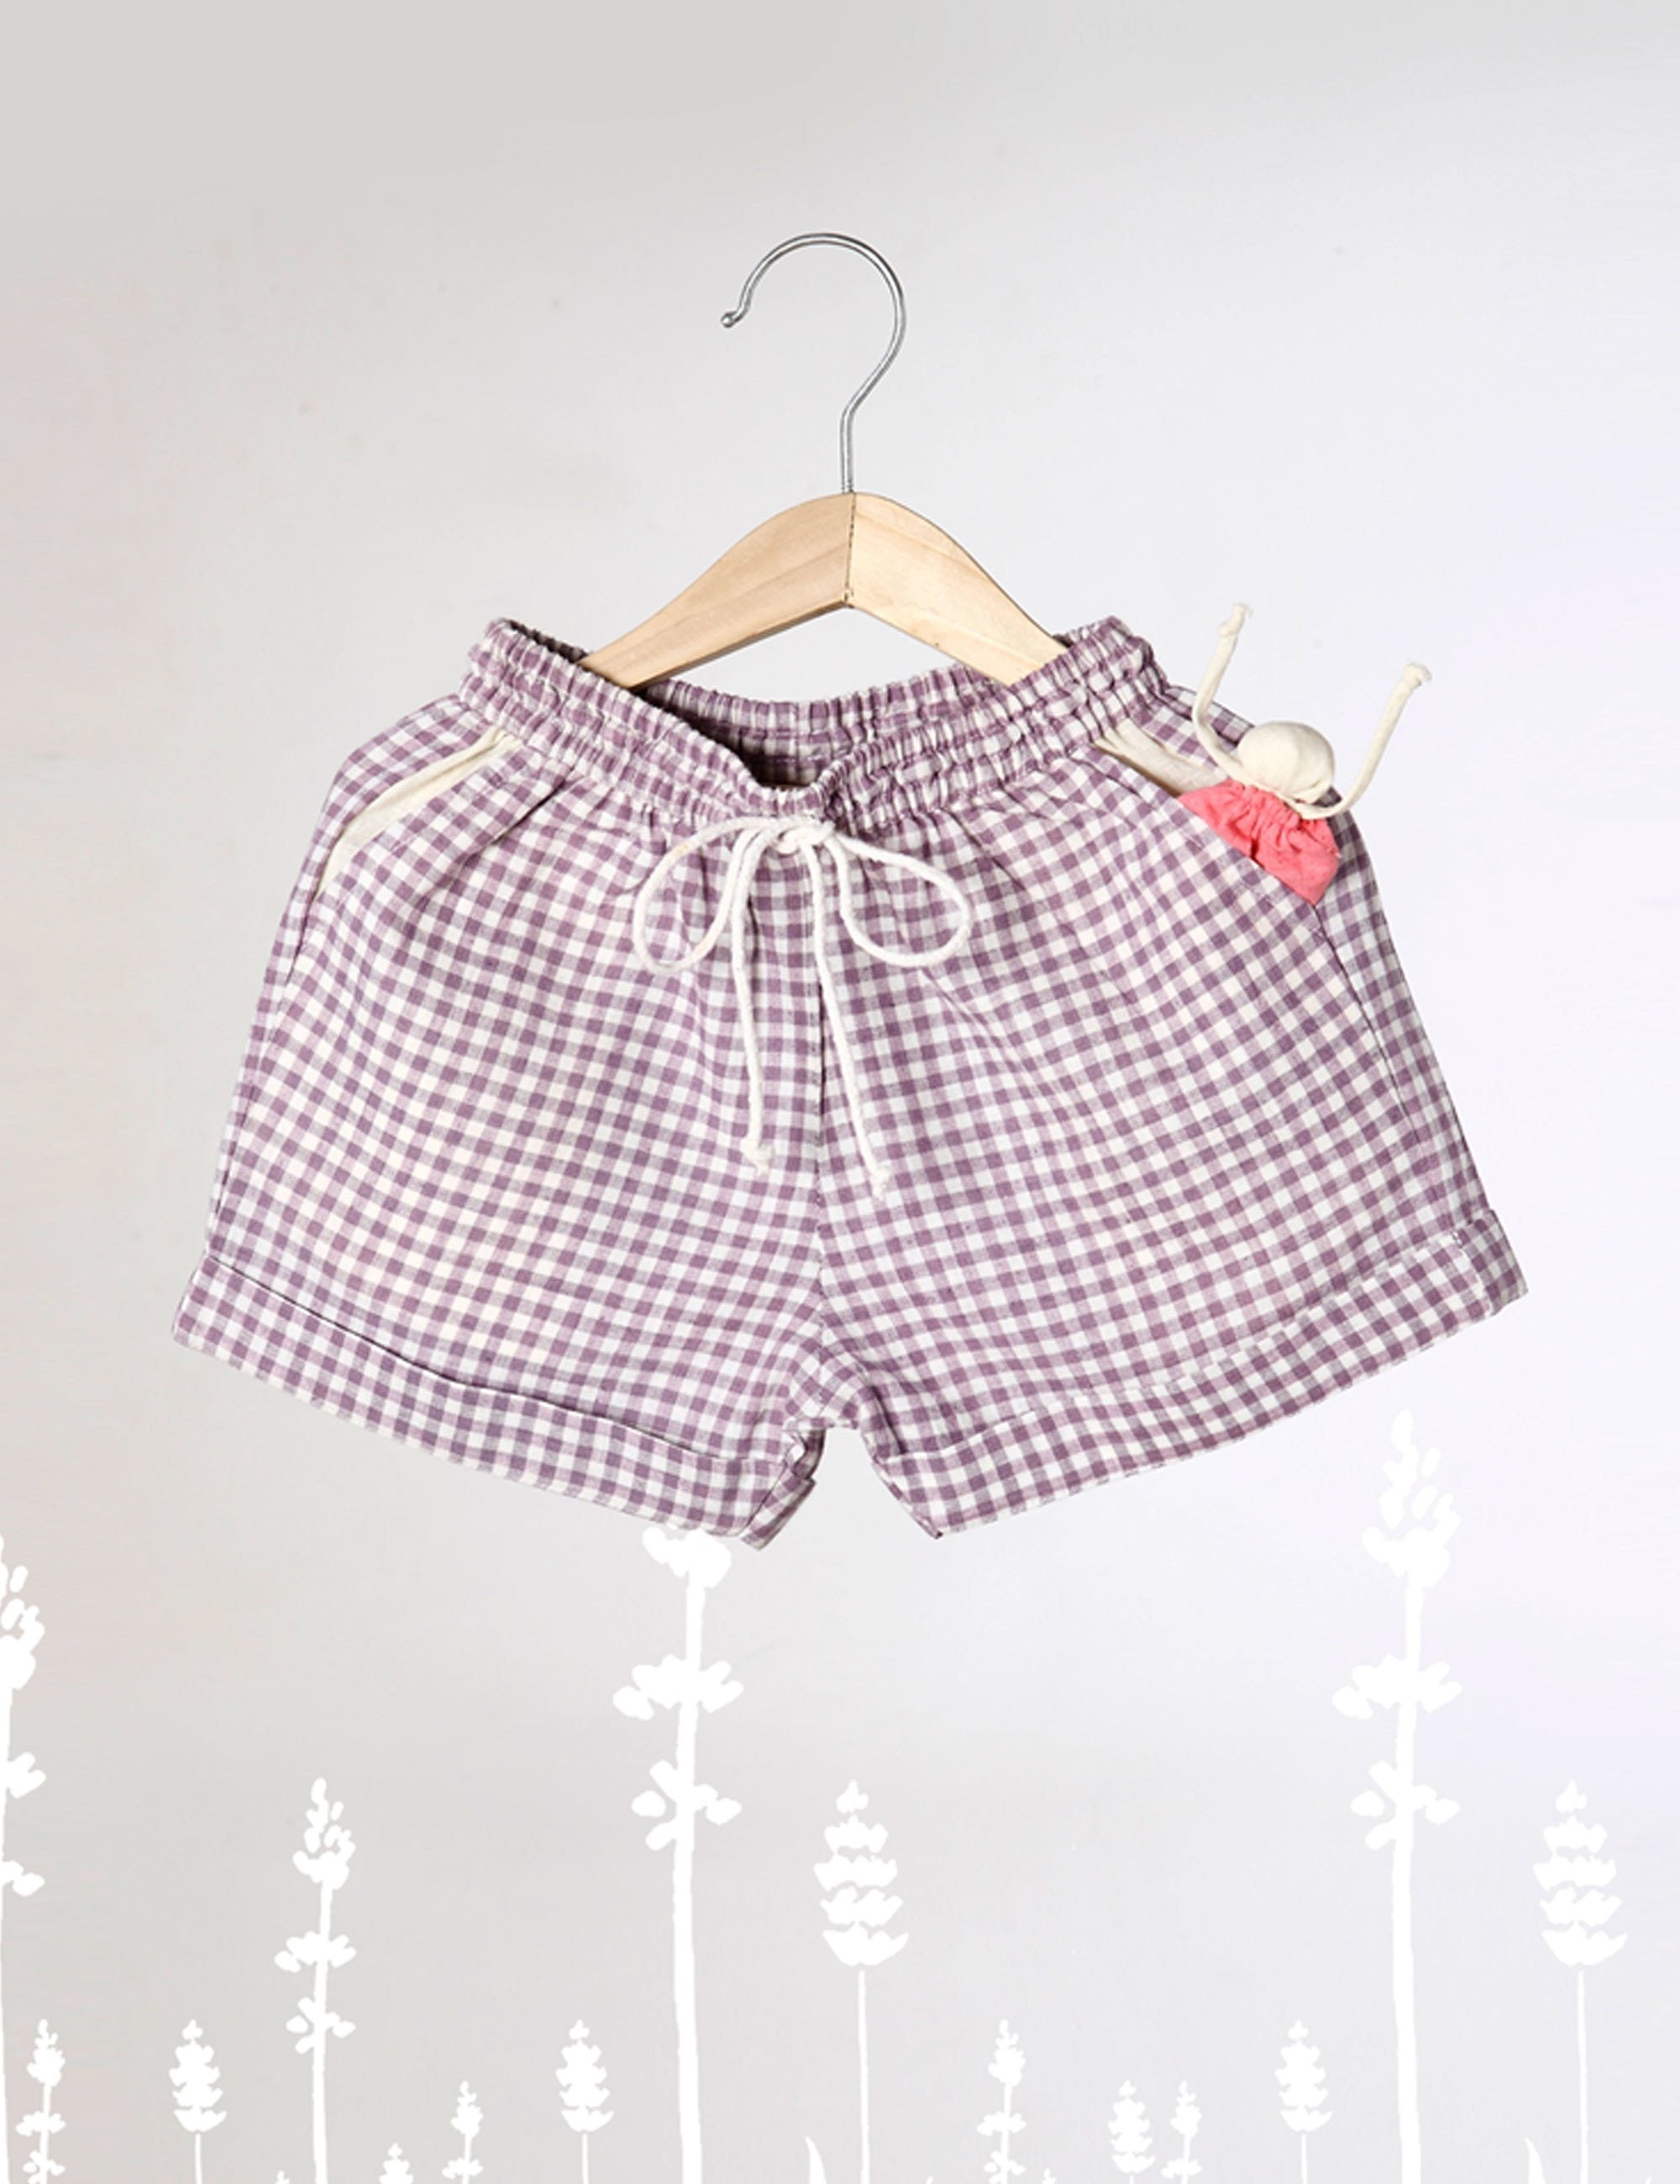 Let's Take More Naps - Lavender Checkered Unisex Shorts